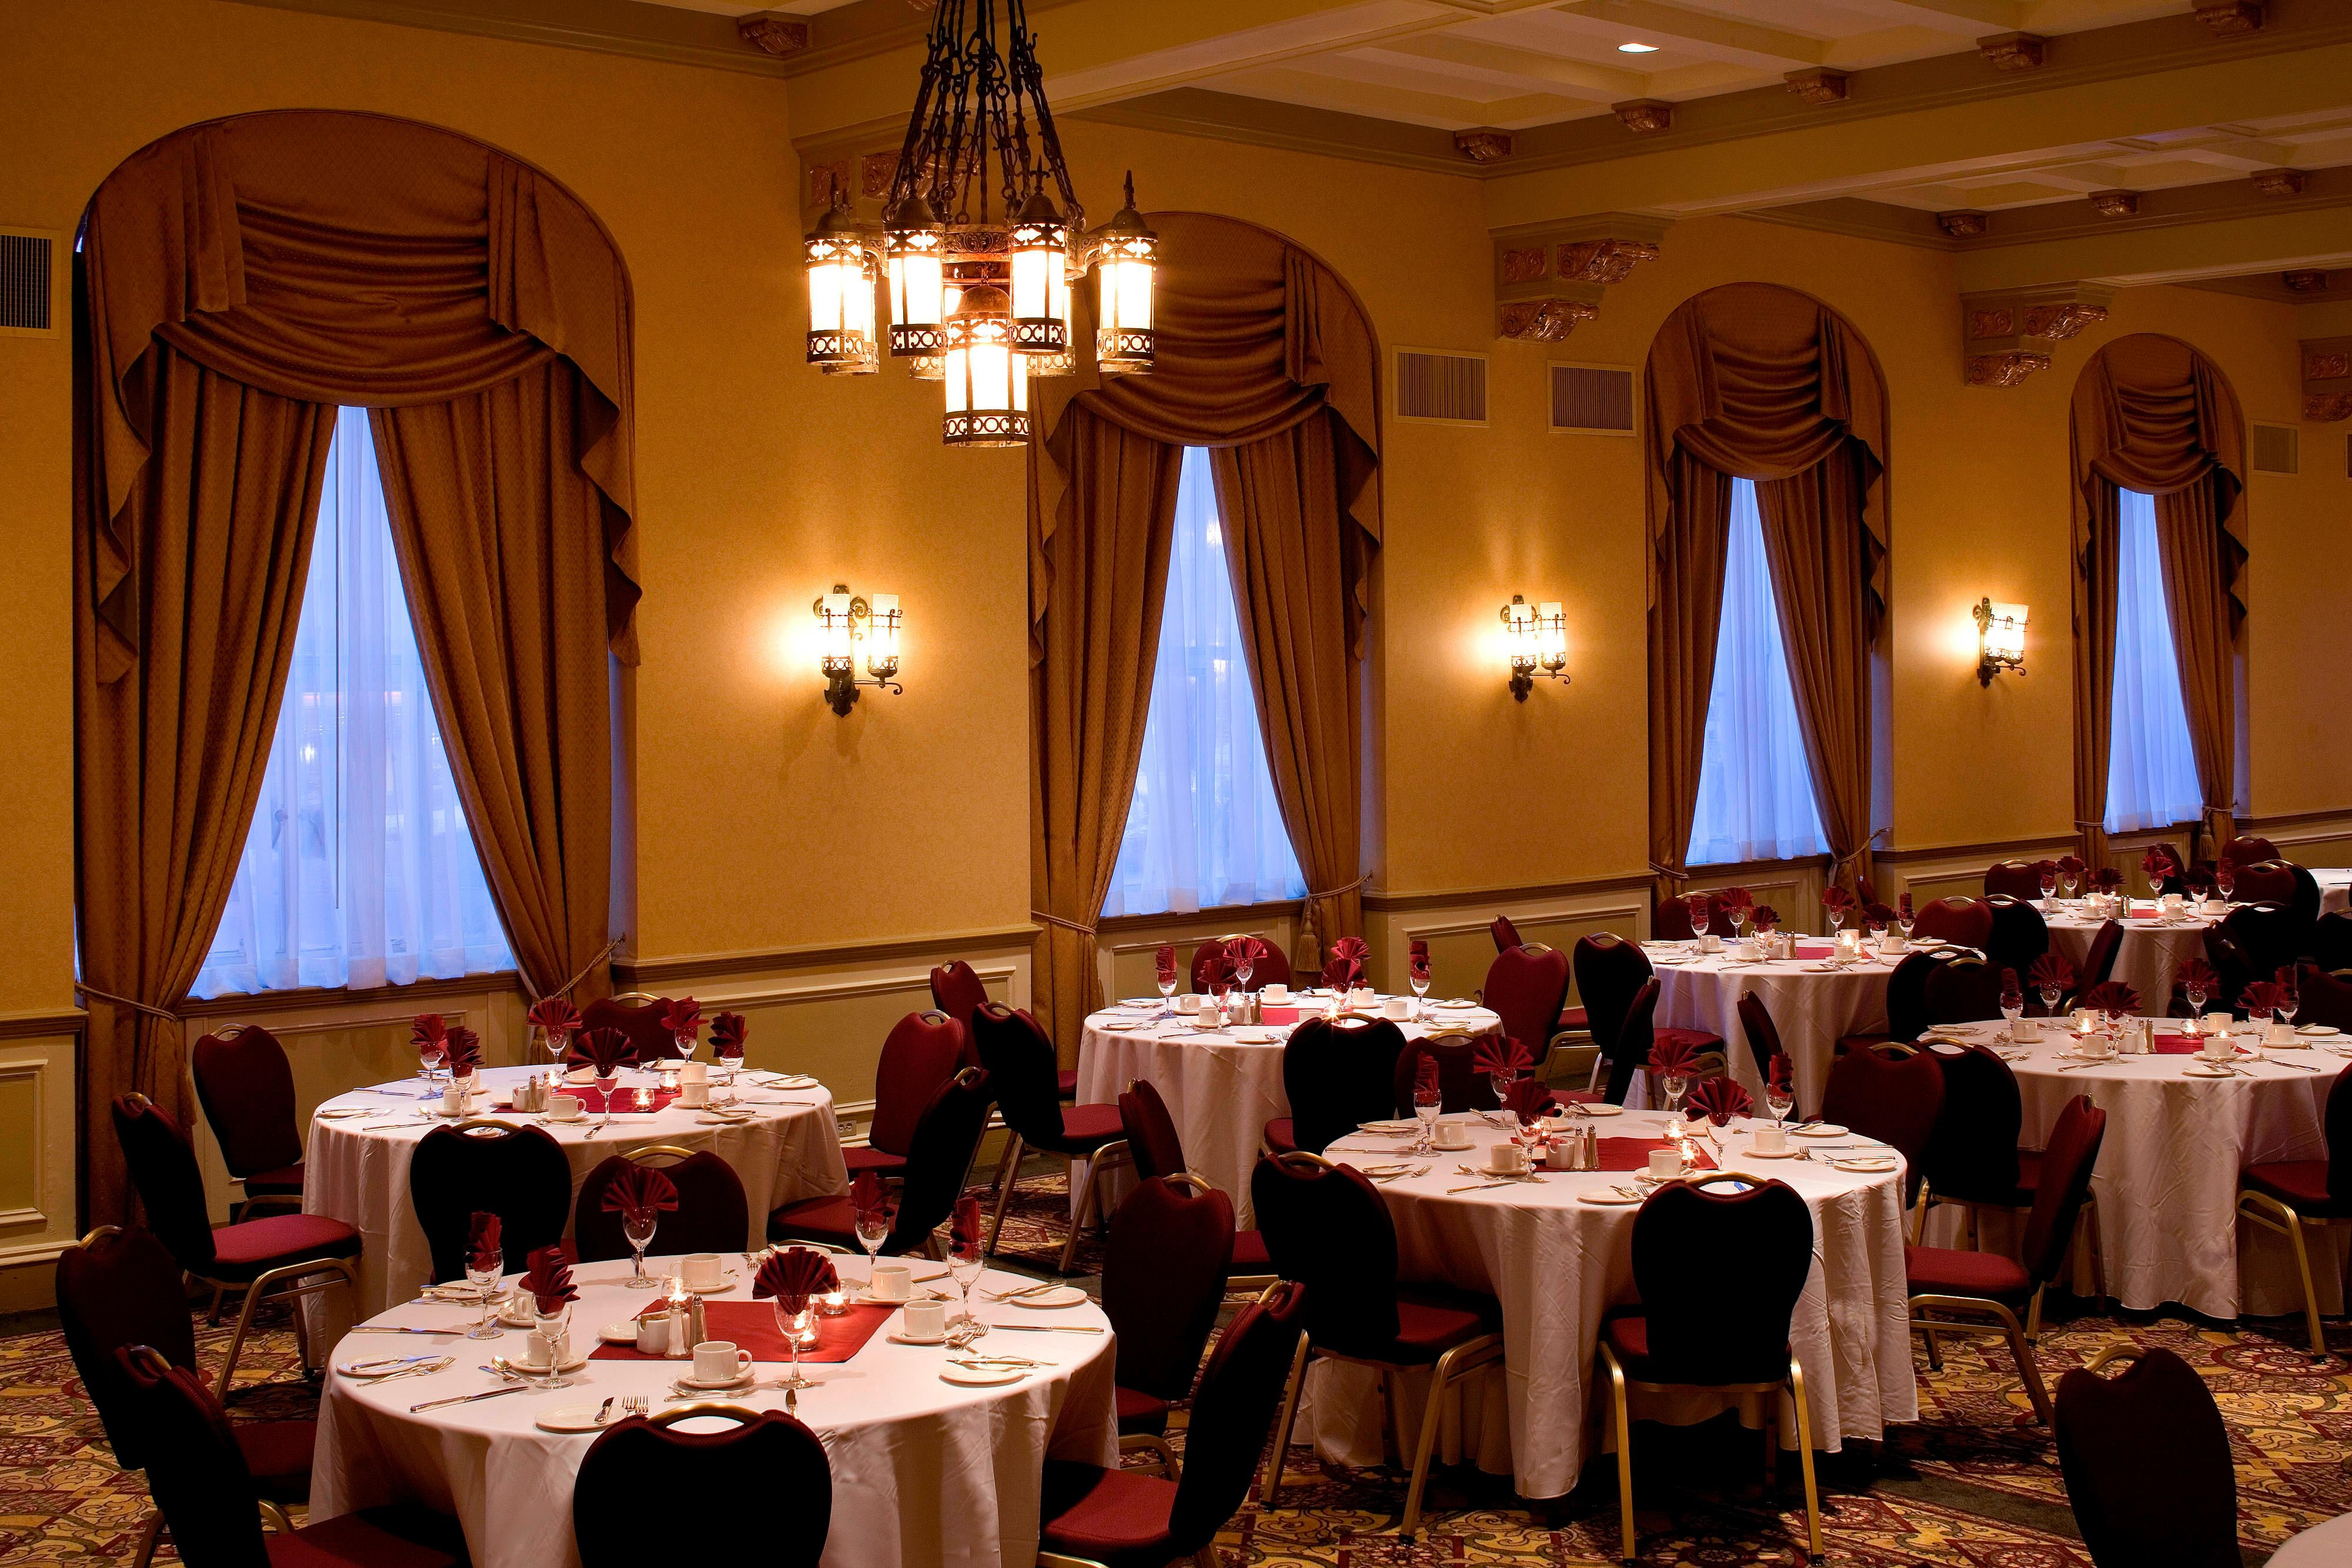 Catering Boardroom Meetings Conferences Ballroom